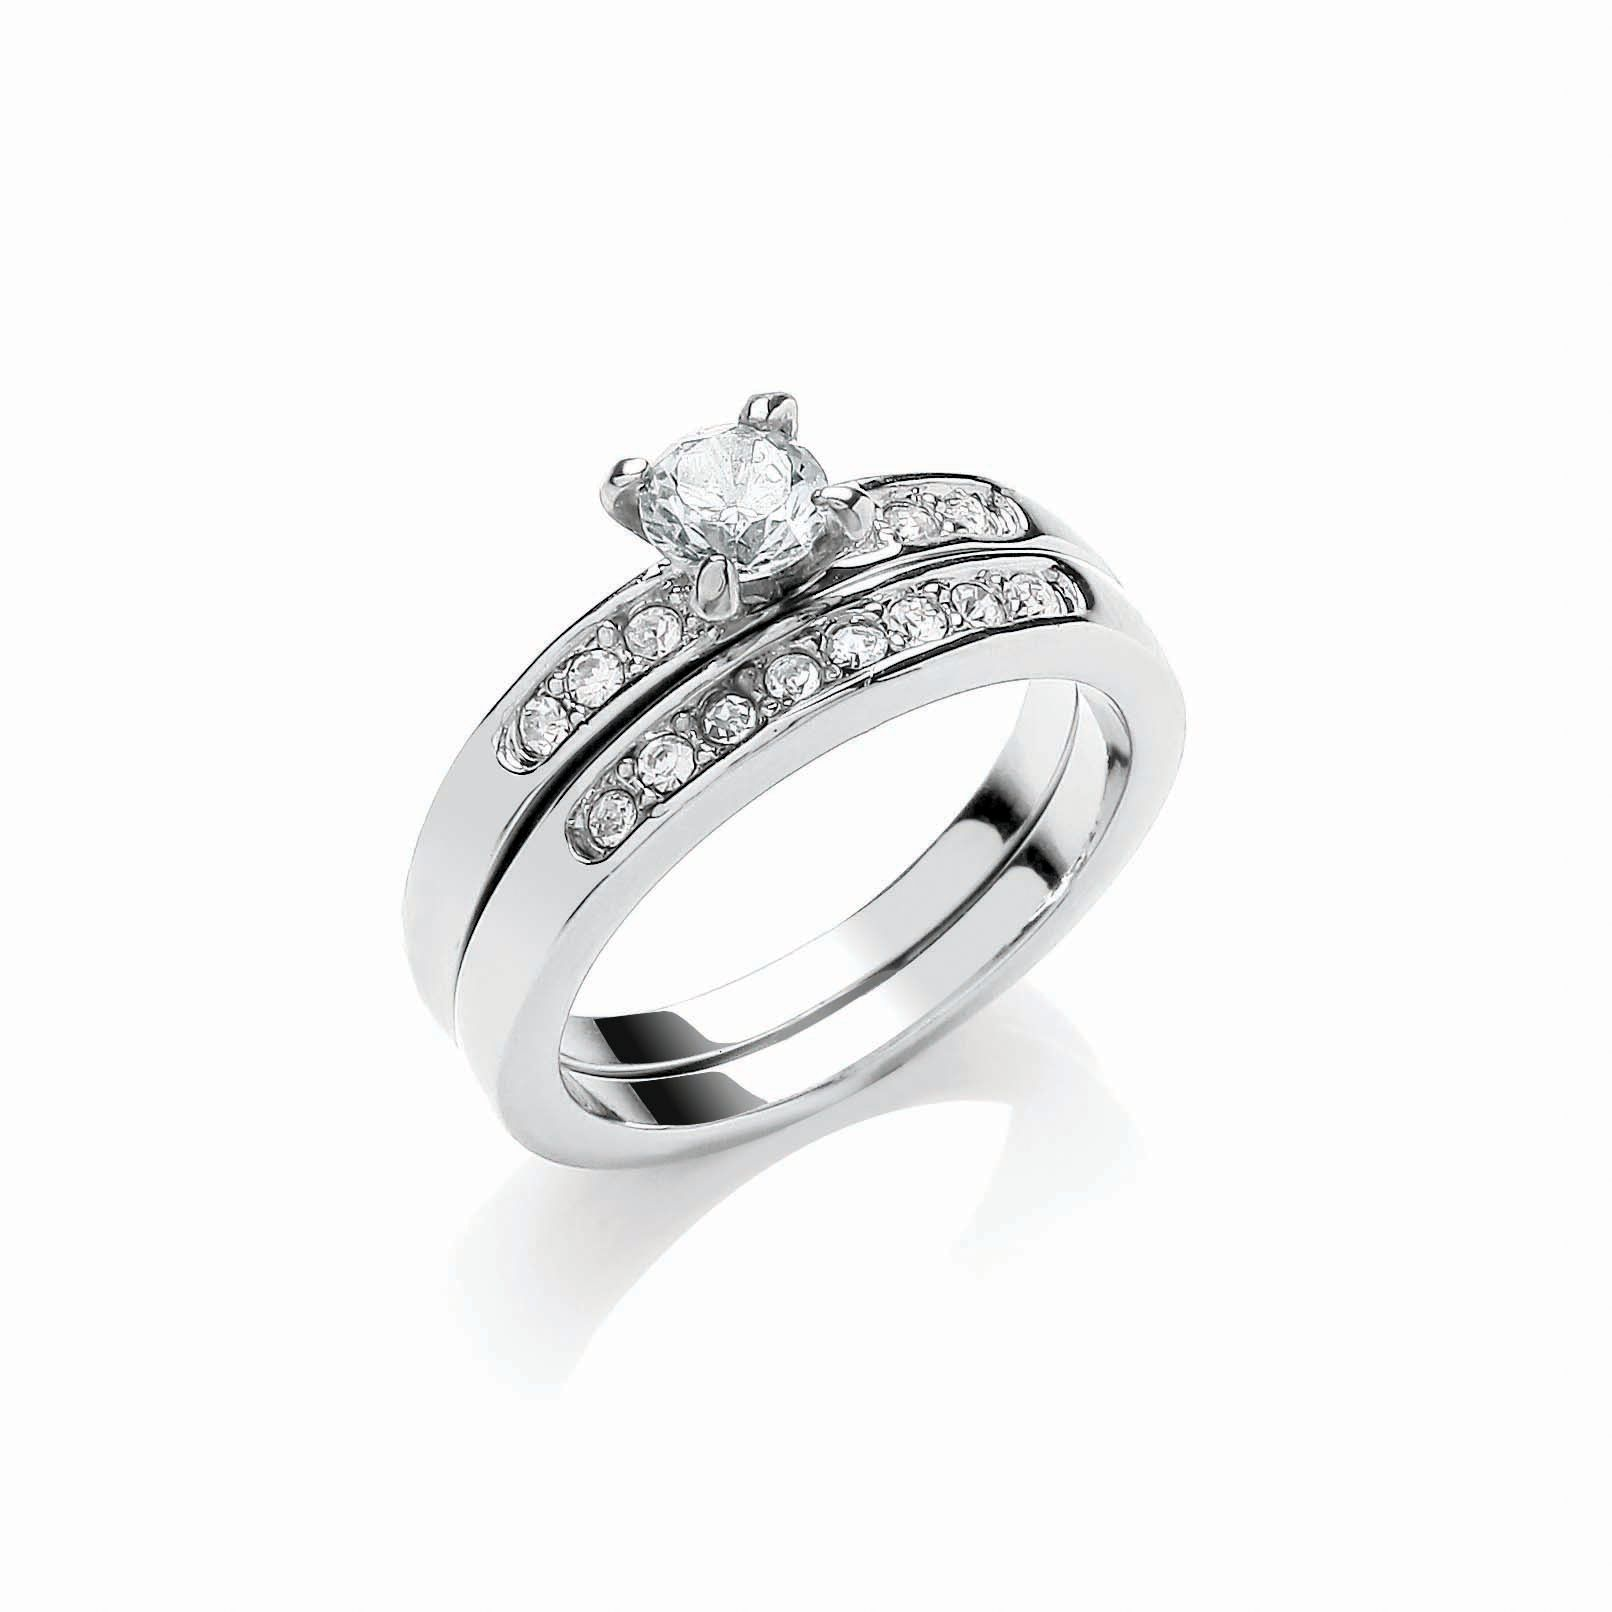 buckley london rhodium wedding ring duo